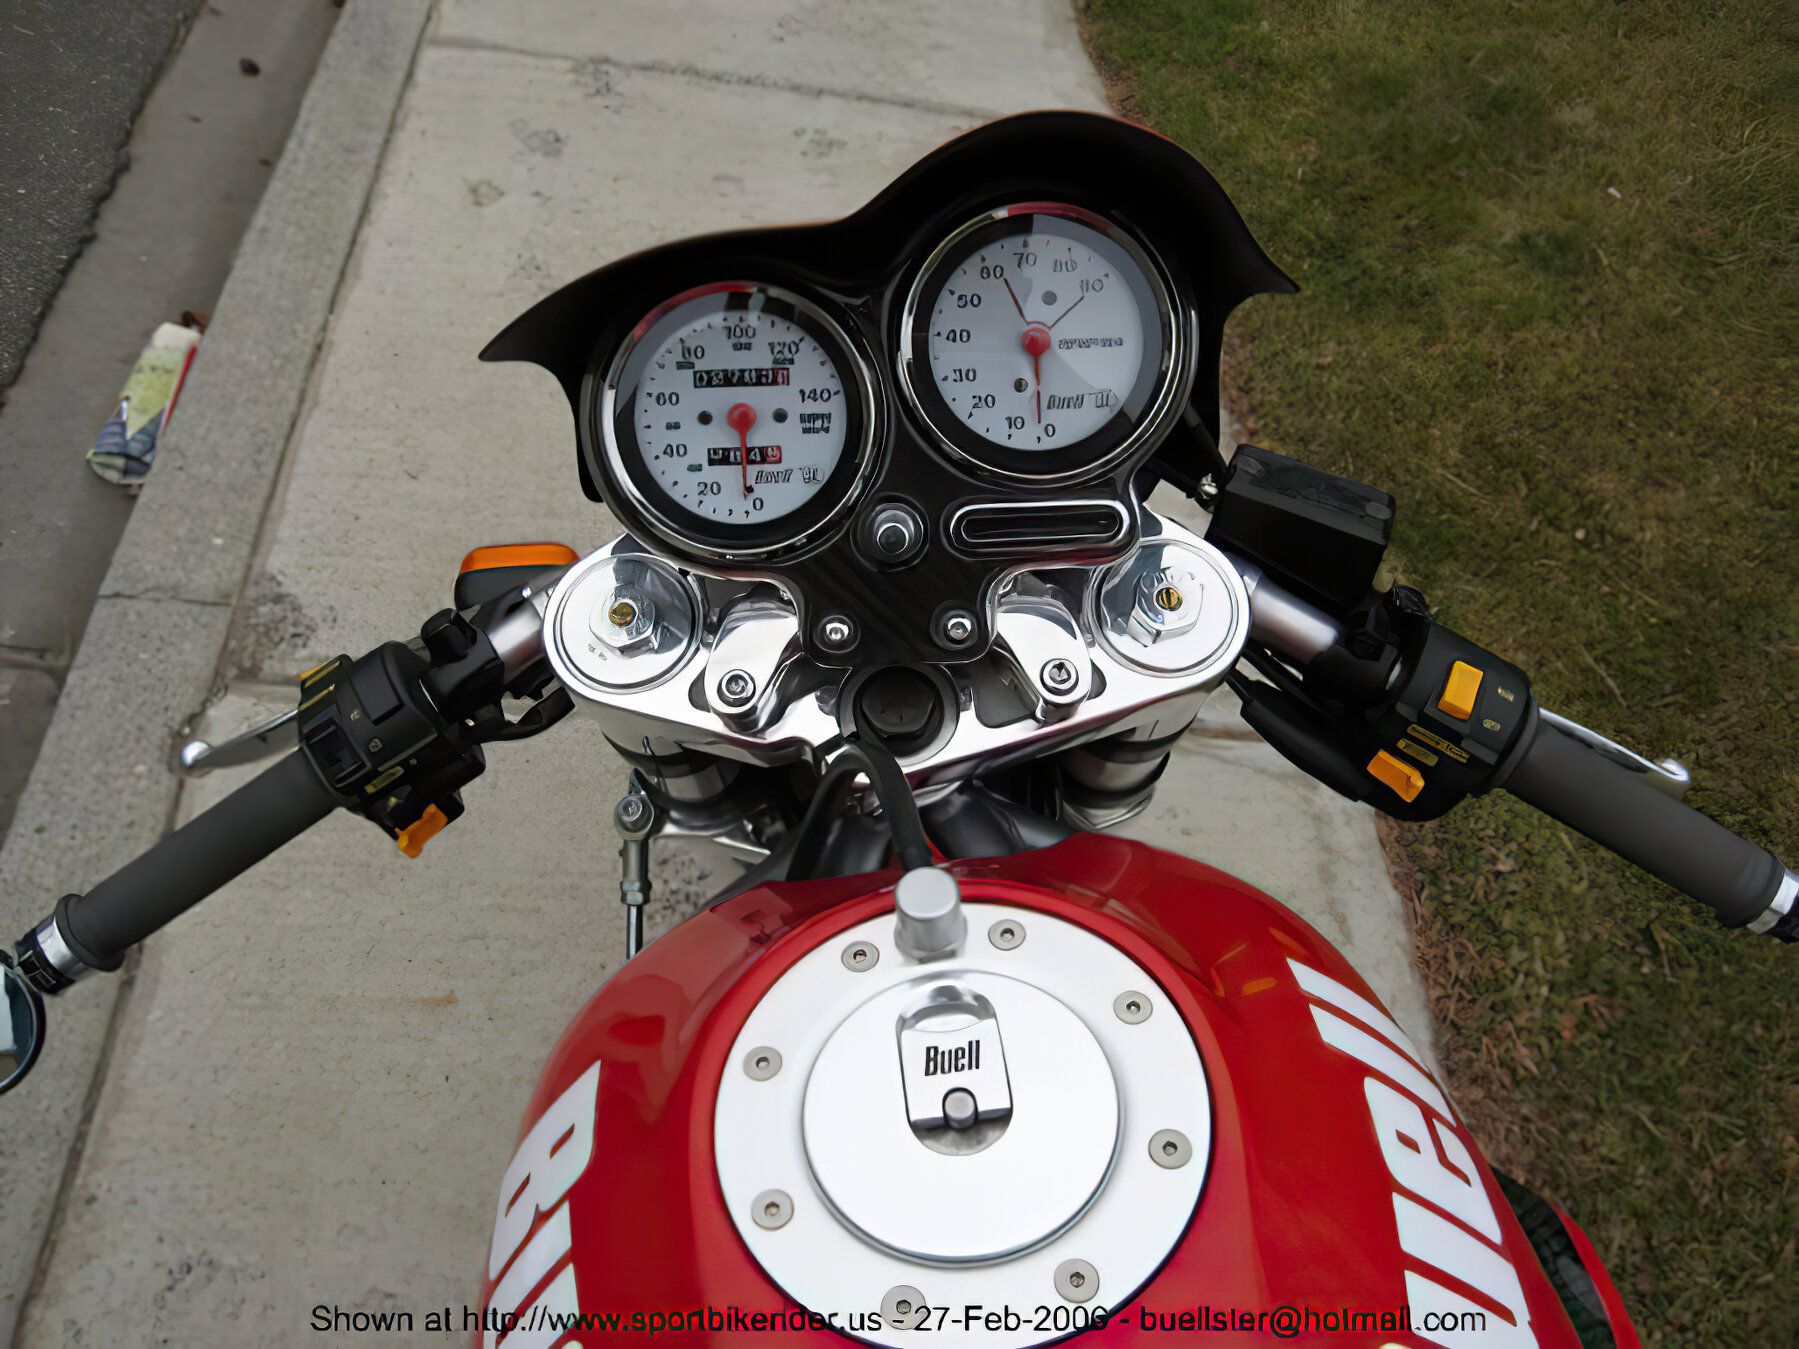 Buell S1/S2/S3 - ID: 97390